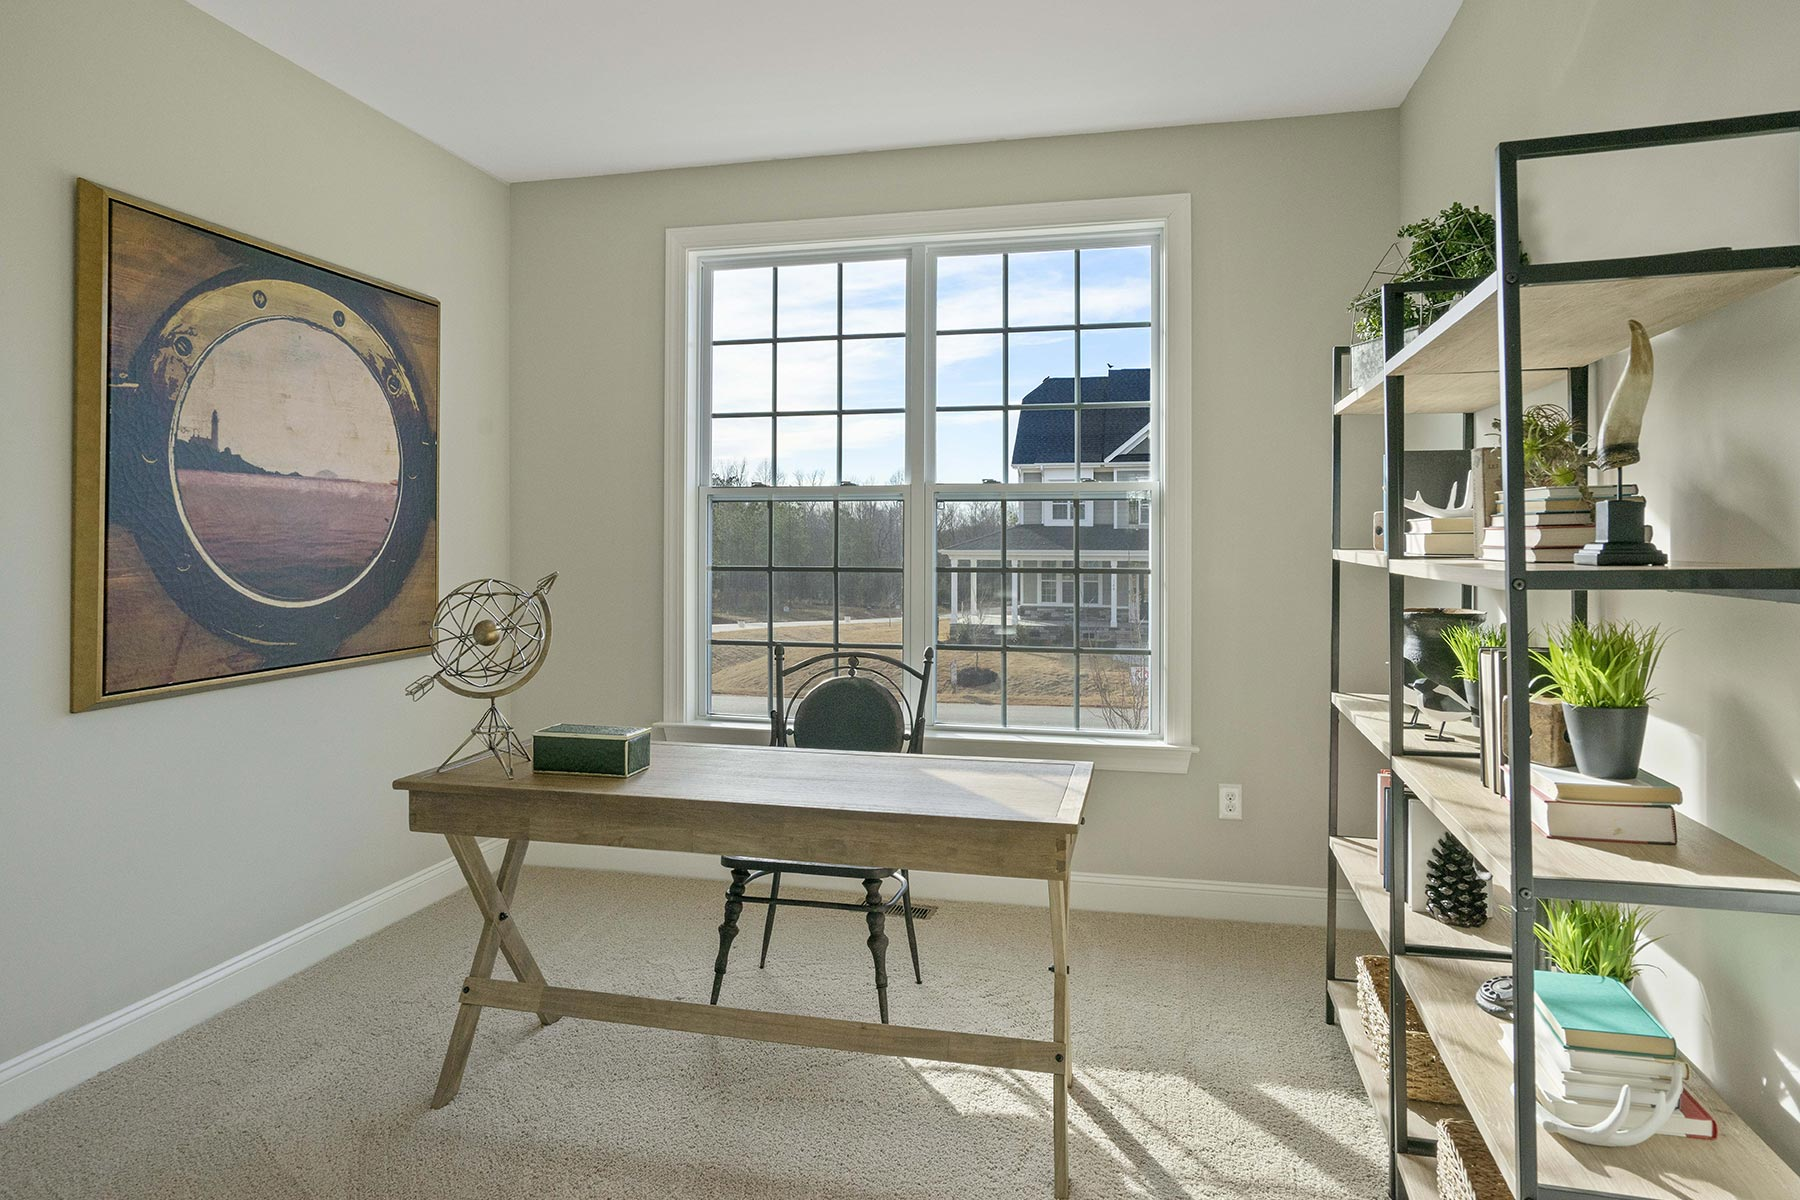 Juniper Plan Study Room at Ballentine Place in Holly Springs North Carolina by Mattamy Homes